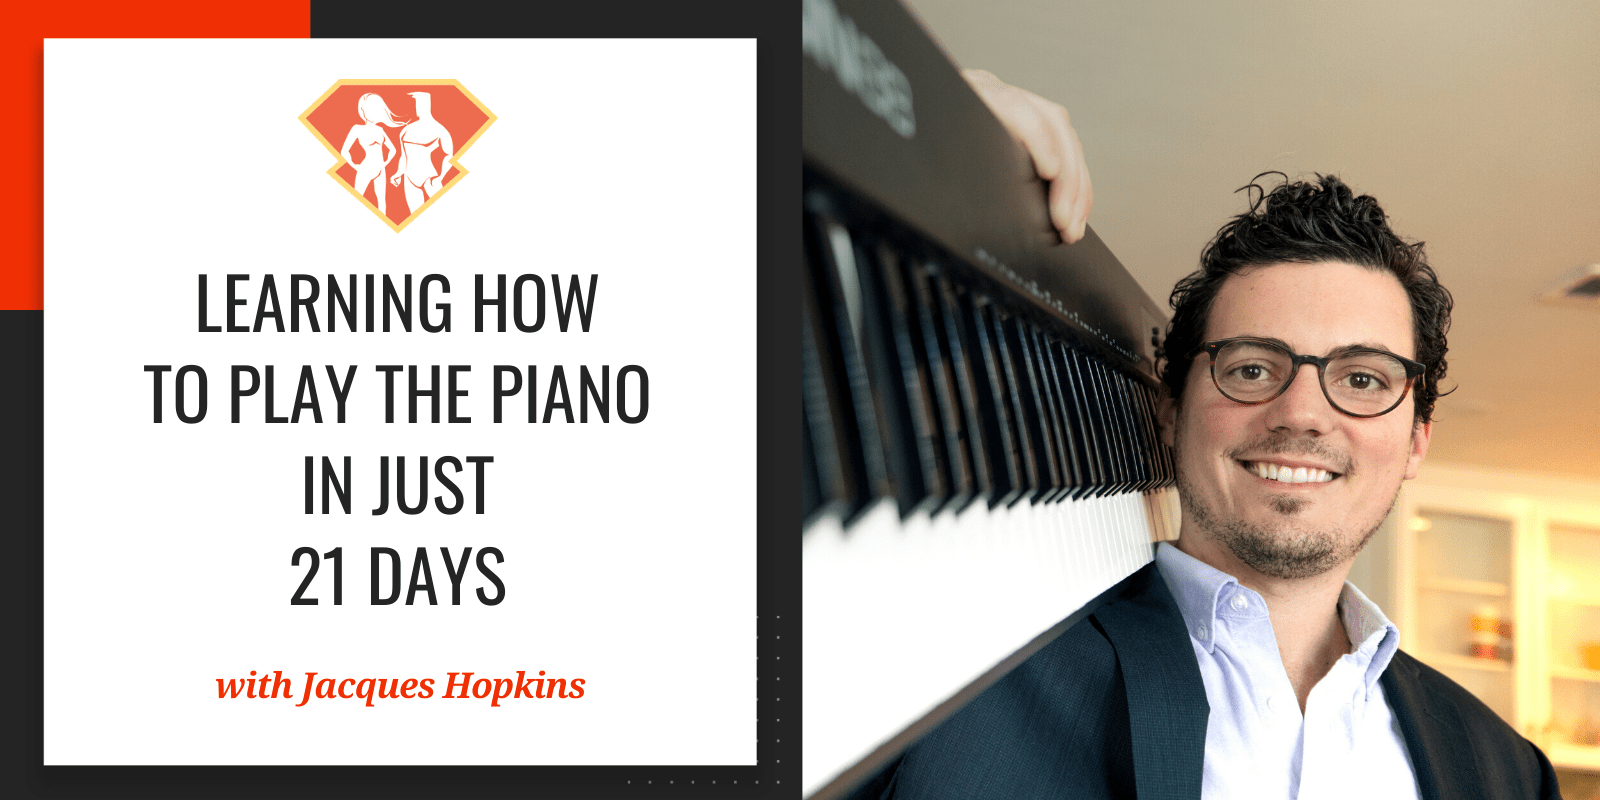 In this episode with Jacques Hopkins, we learned why everyone can learn how to play a musical instrument, and how to learn to play the piano in 21 days.